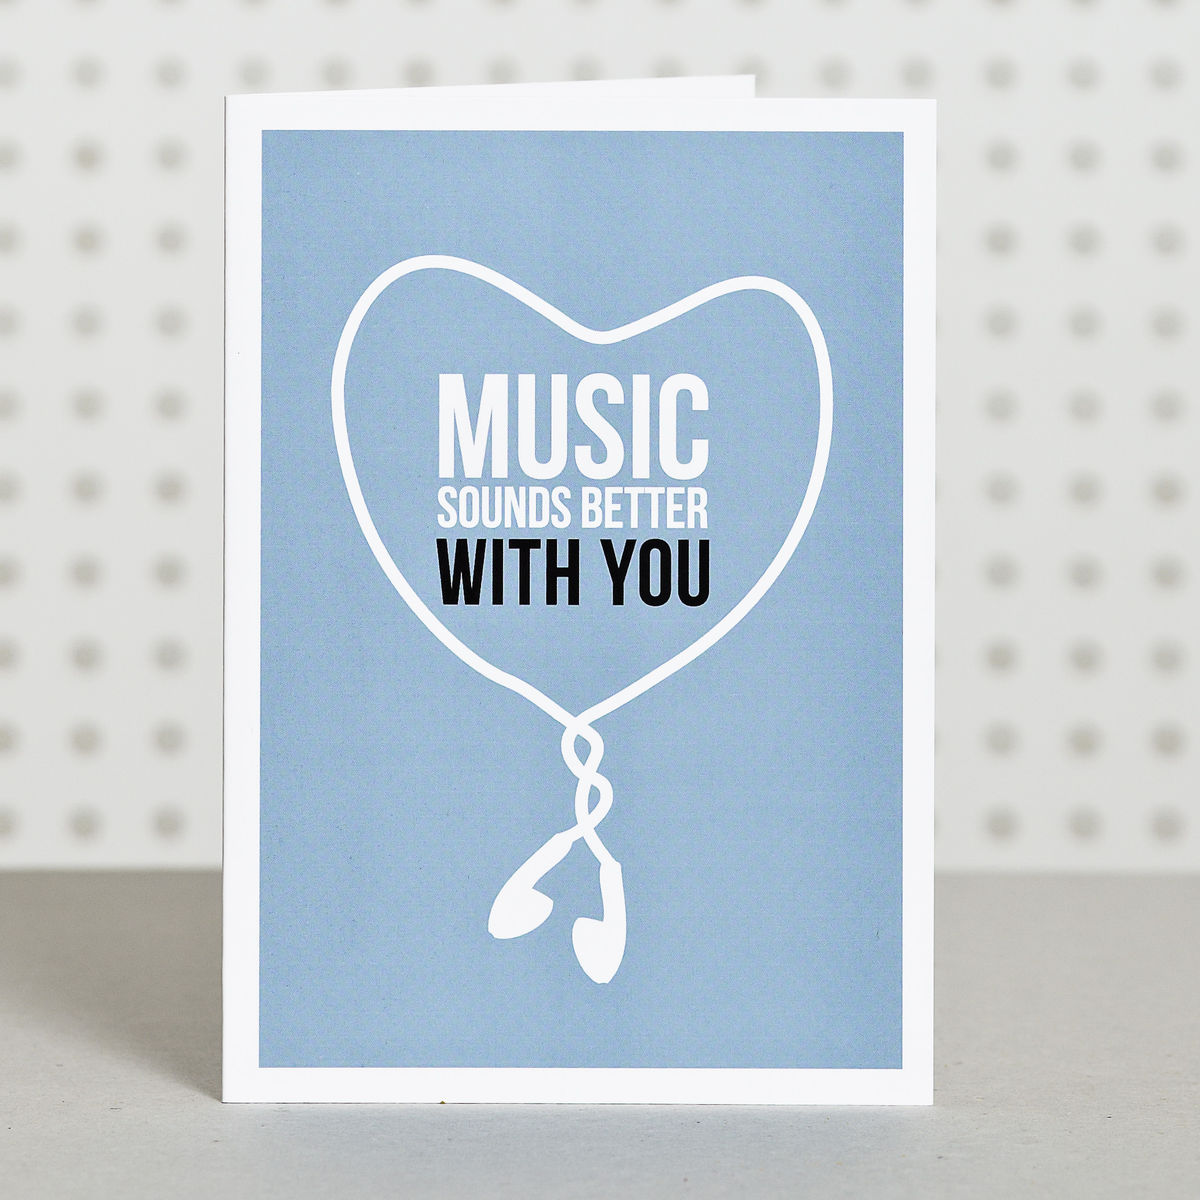 Find great deals on eBay for Musical Birthday Card in Cards & Stationery. Shop with confidence.